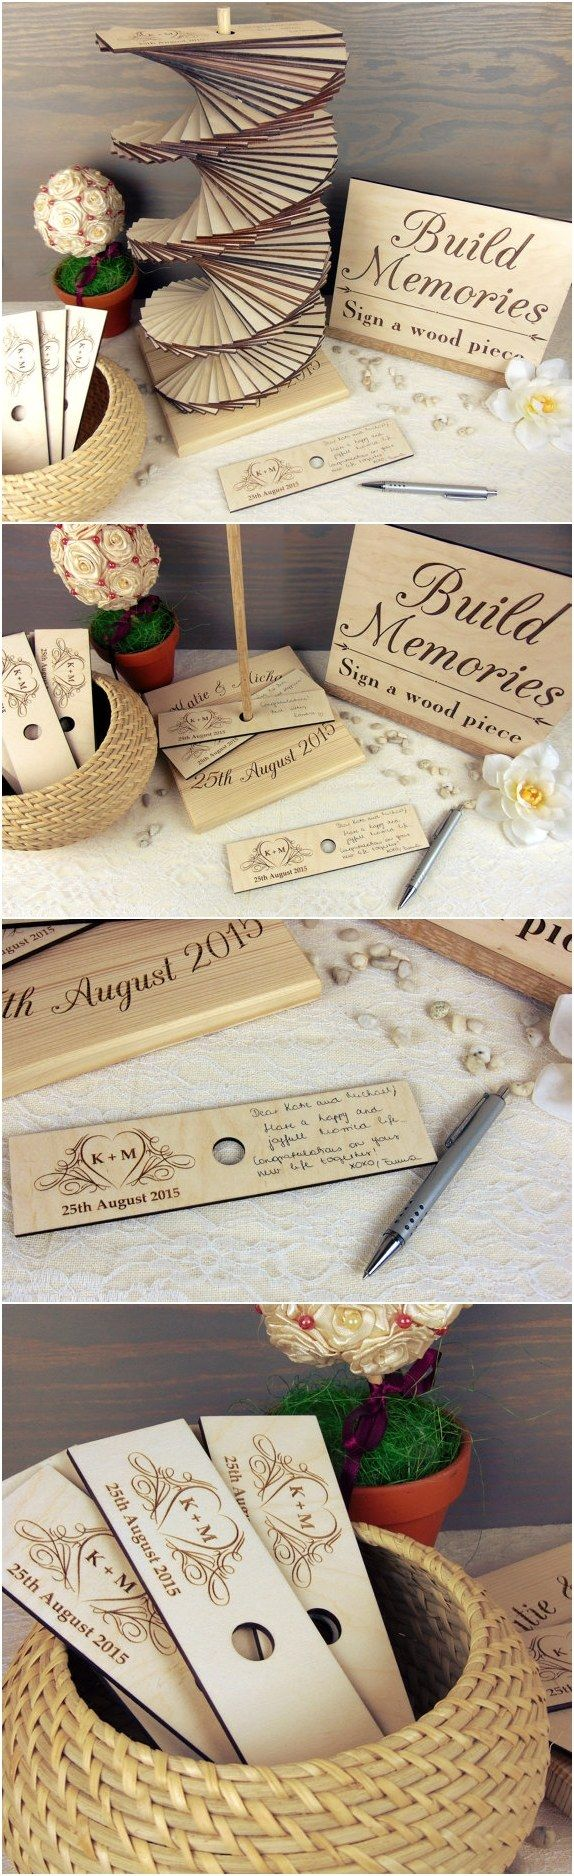 etsy finds: 18 rustic country wood wedding guest books | country